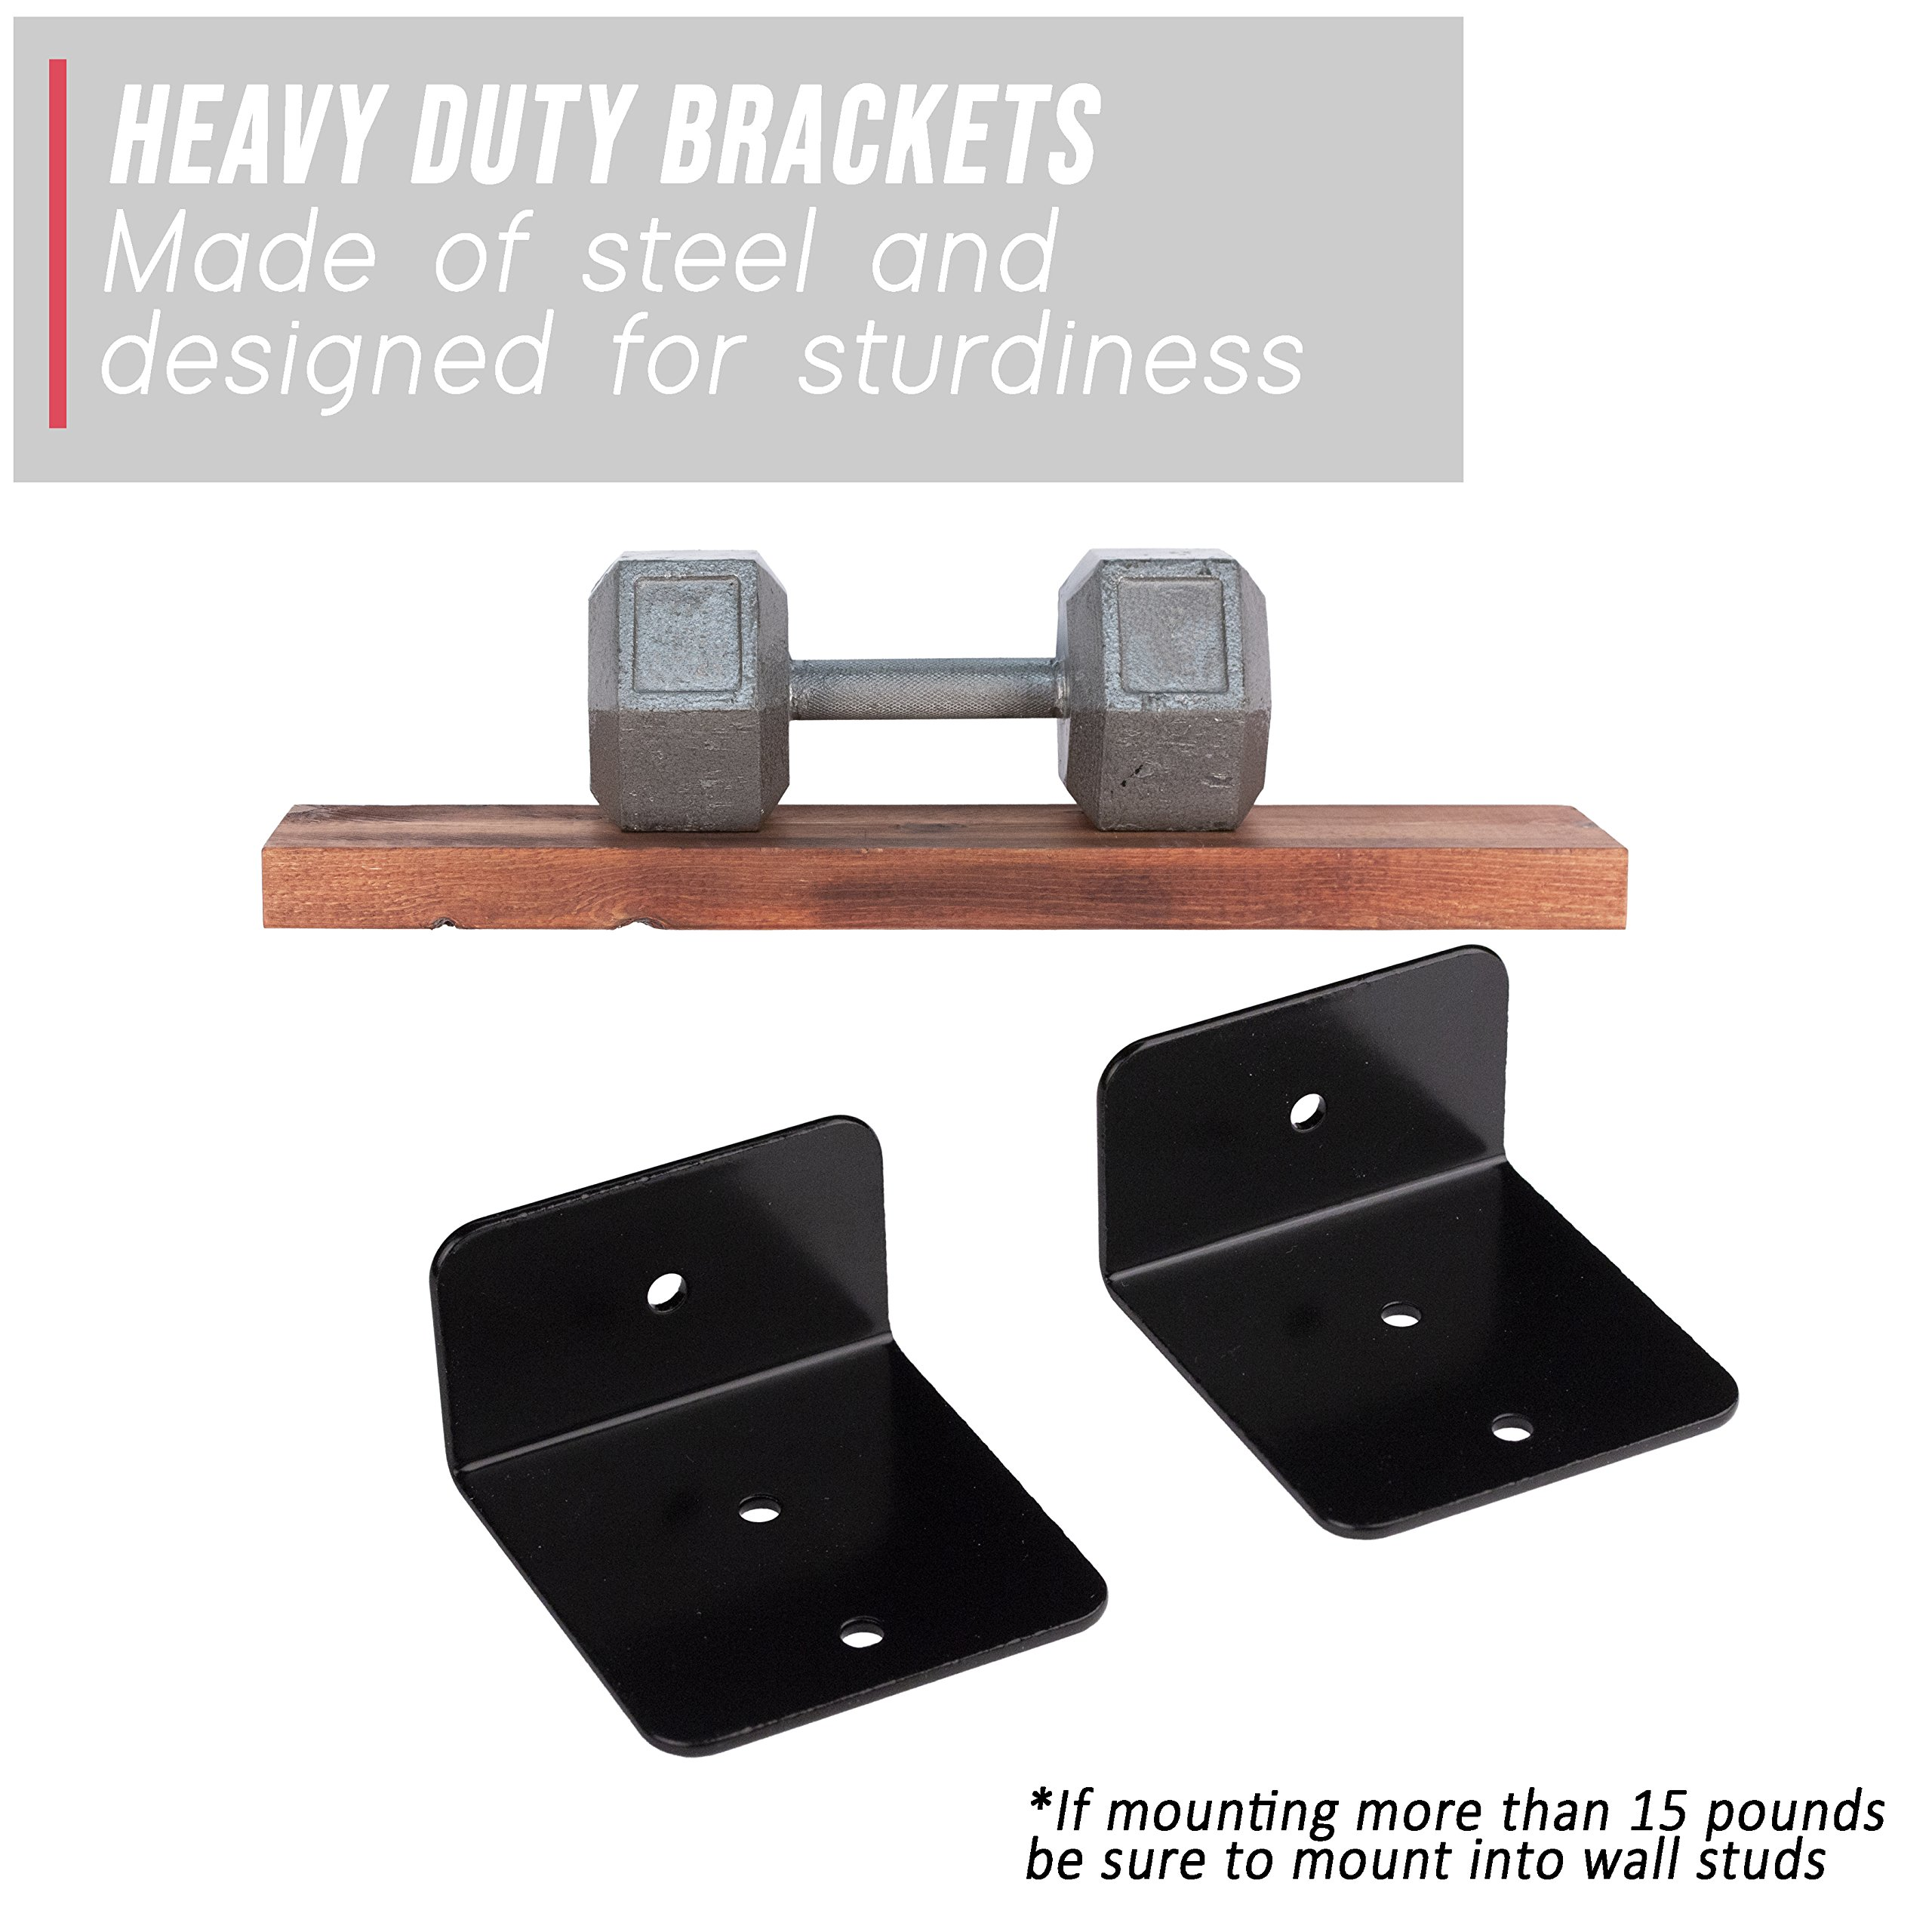 Floating Shelves Wall Mounted Shelf - Rustic Wood Decor Hanging for Bathroom Kitchen Bedrooms Living Room or Office Walls - Sturdy & Decorative Shelving Storage Rack - USA Made - 2 FT. Mahogany 2-Pack by US2U Displays (Image #2)